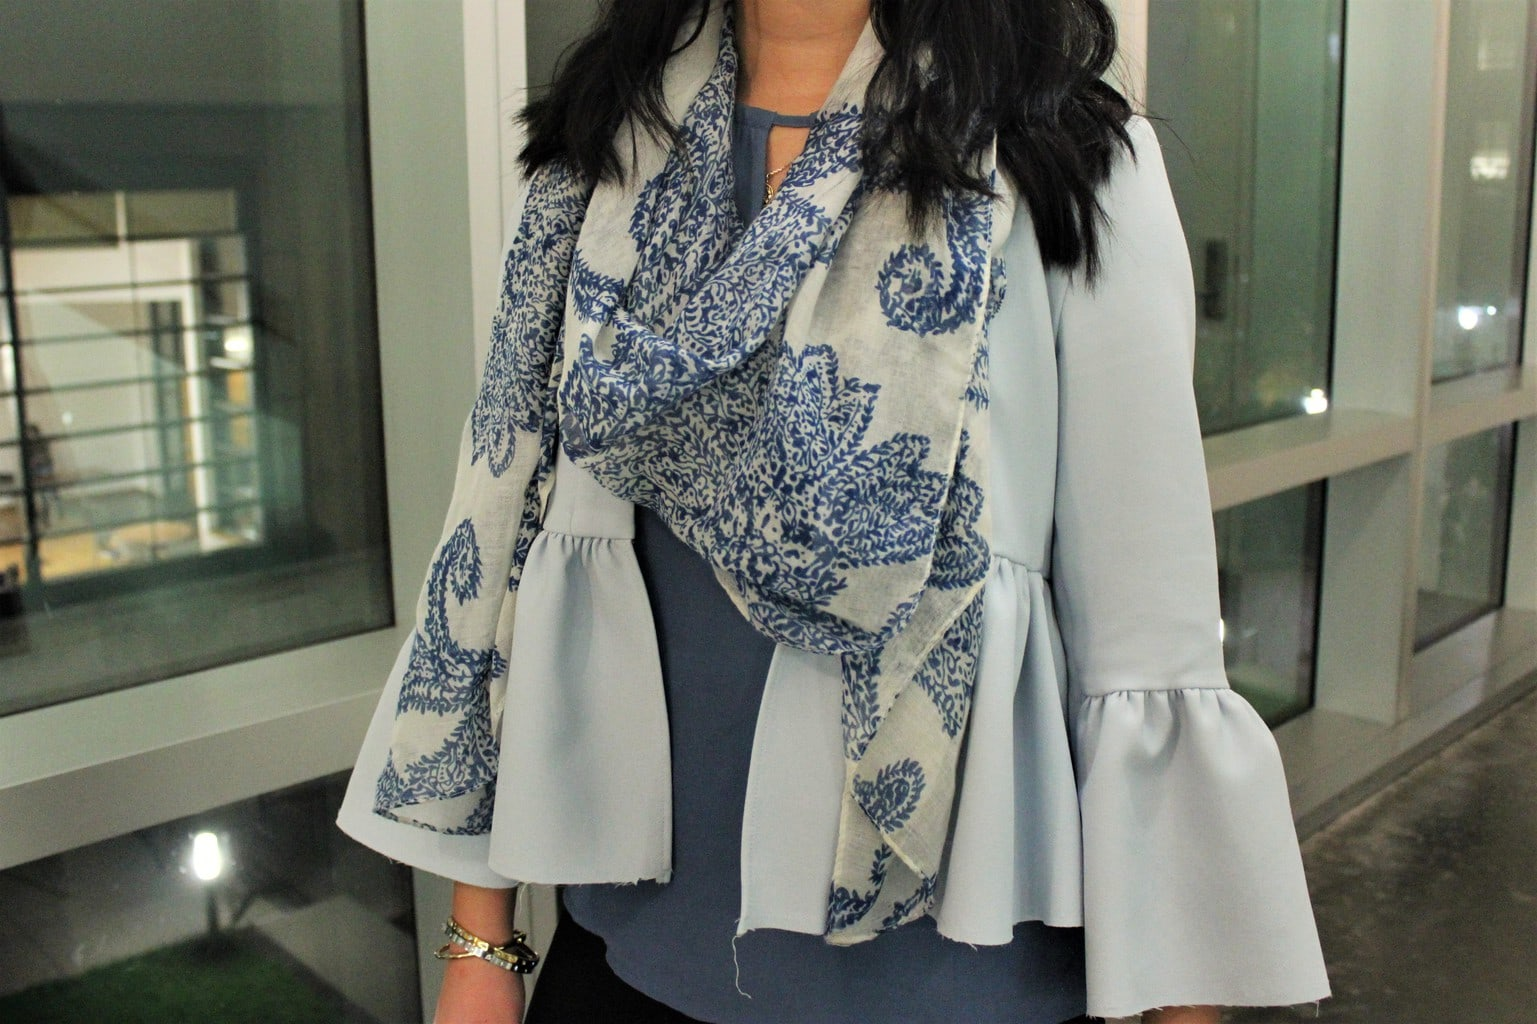 Catherine's baby blue peplum jacket also has bell sleeves, which she pairs with a blue and white paisley scarf.